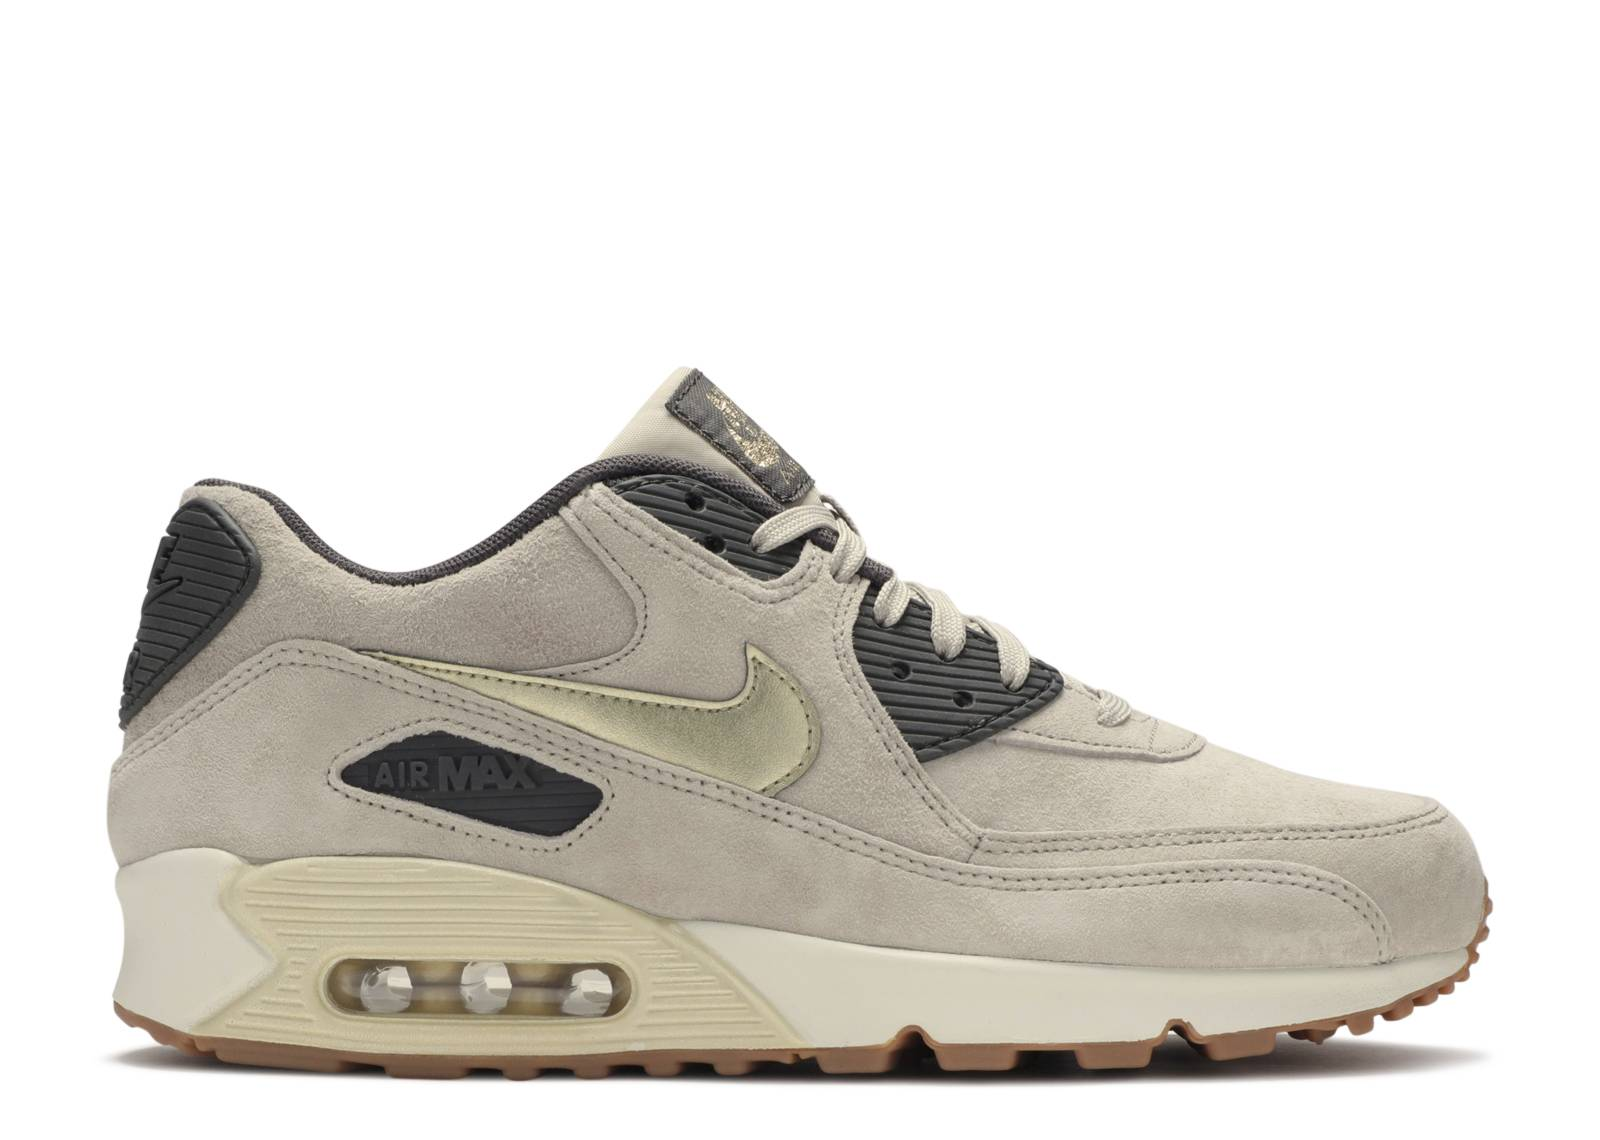 buy sale latest discount fresh styles Nike Wmns Air Max 90 Premium Suede